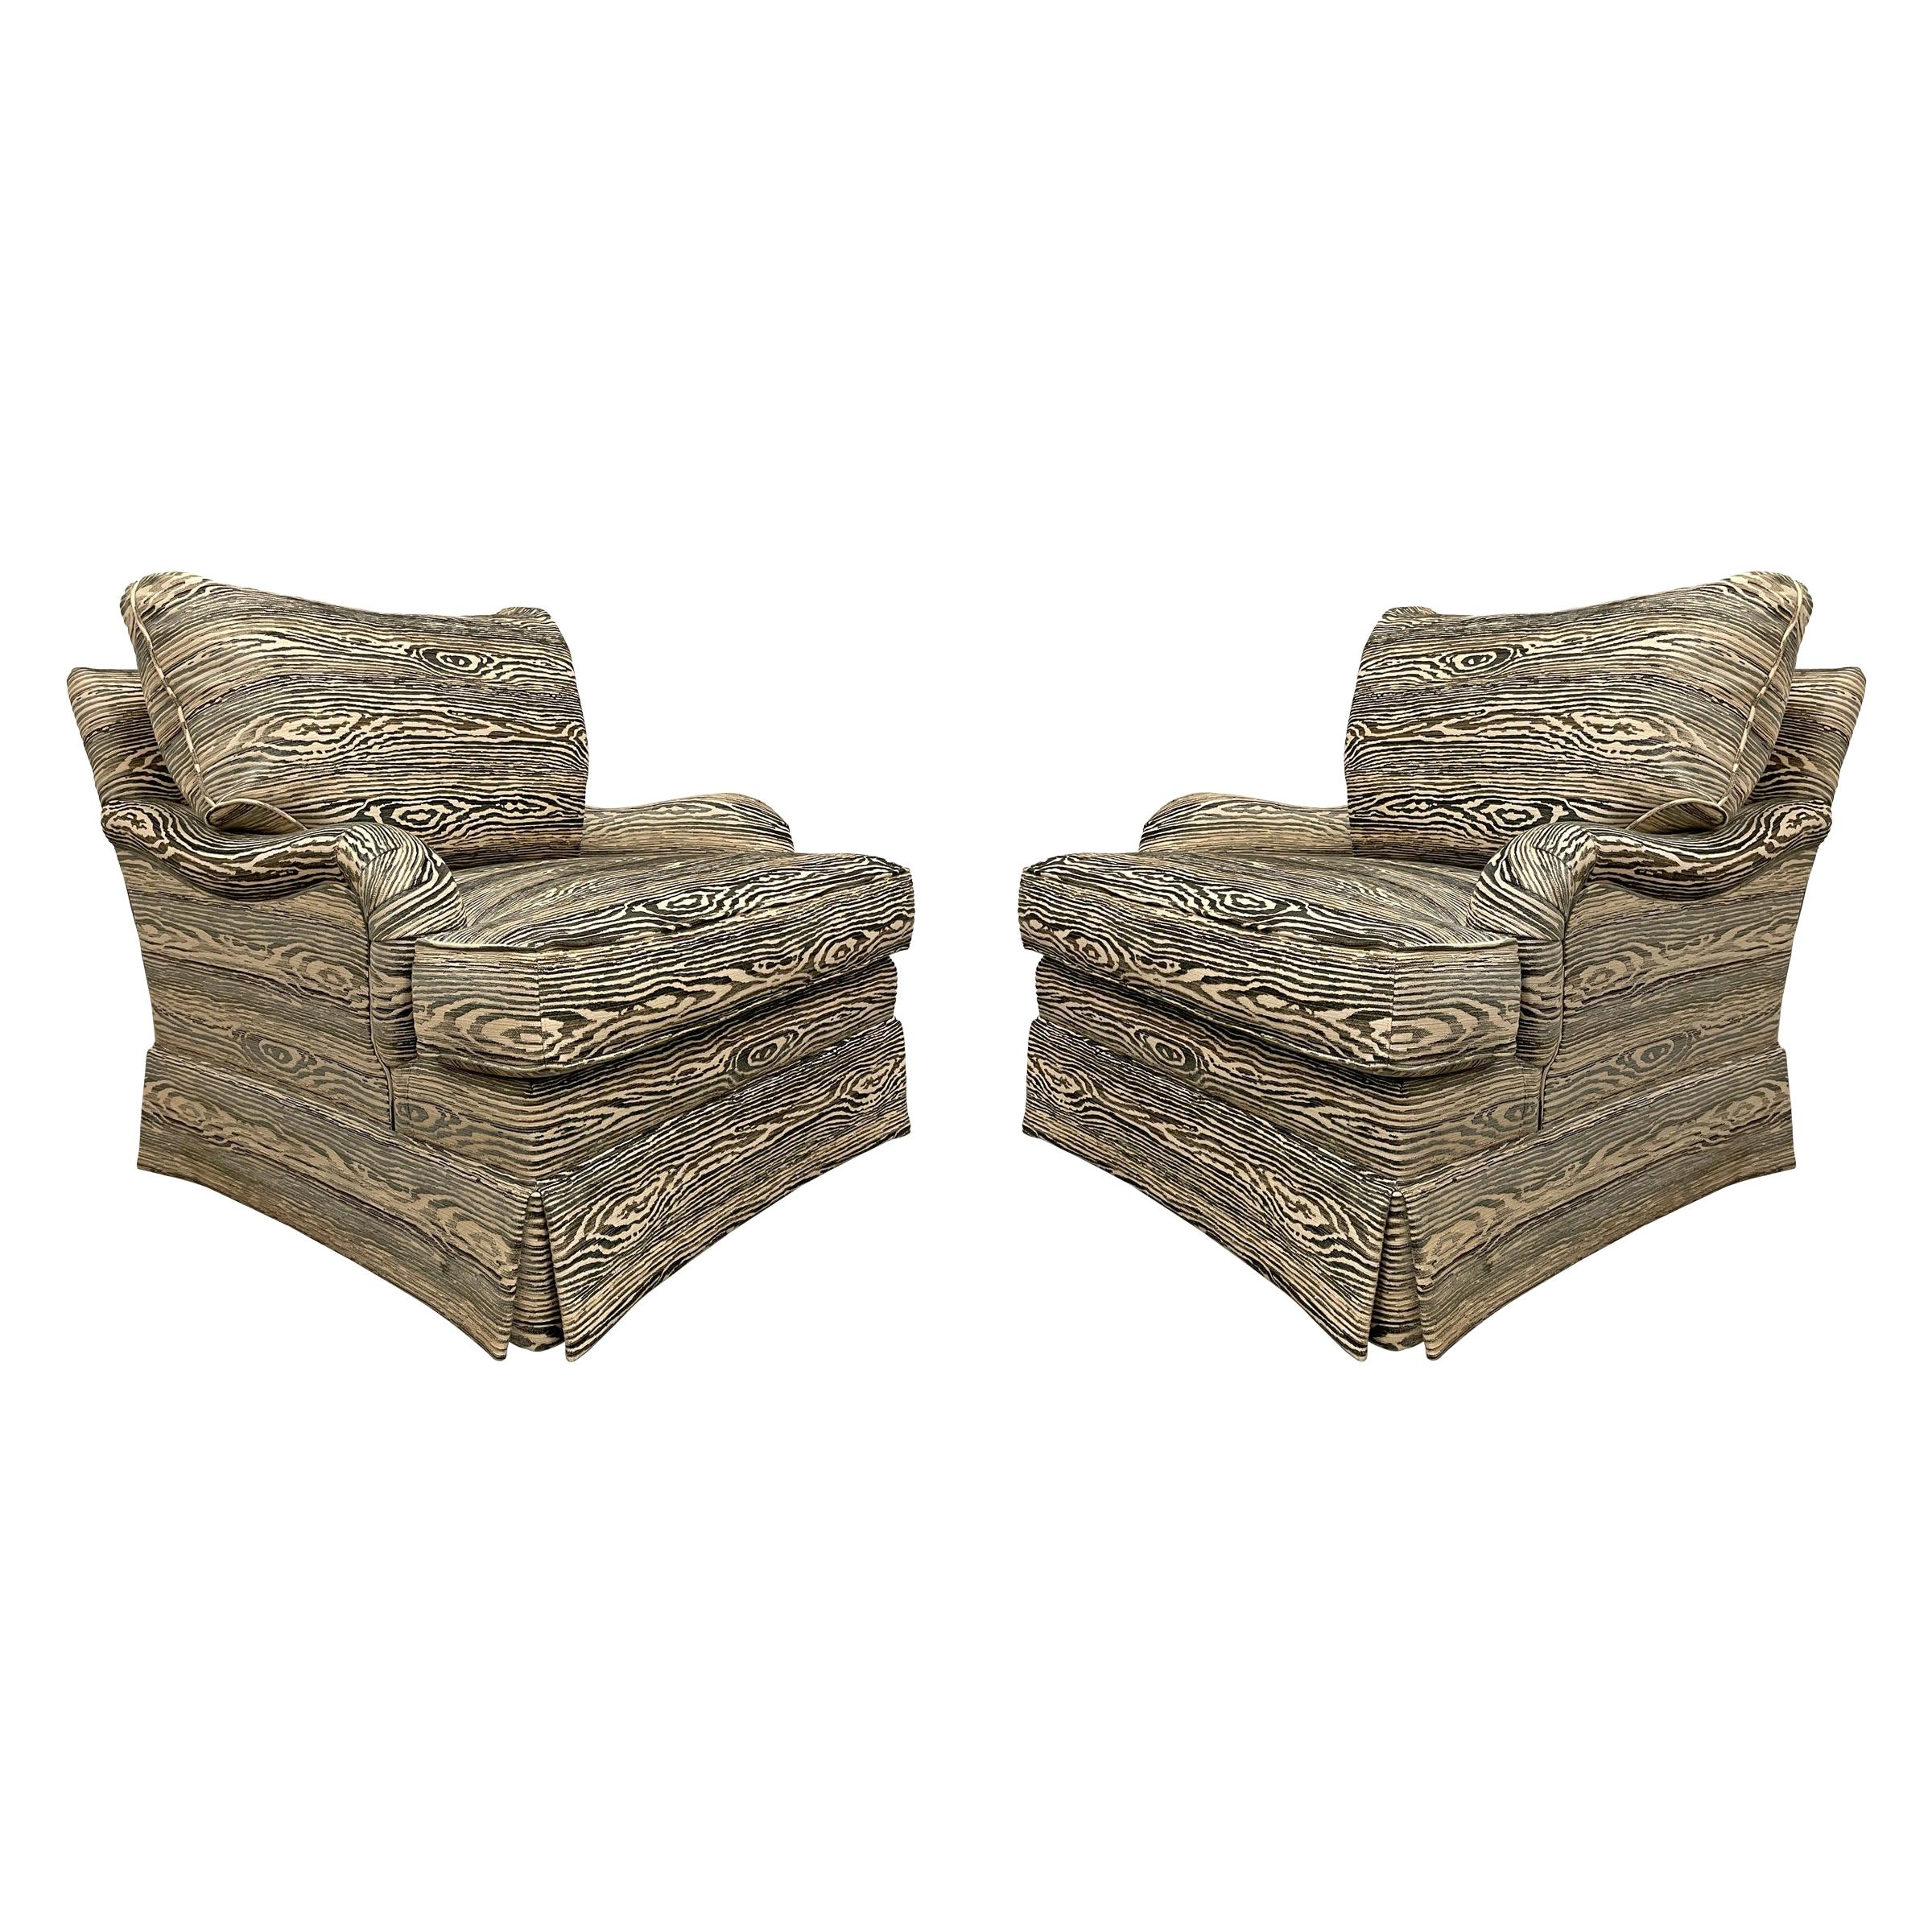 Pair of English Roll Arm Chairs with Faux Bois Upholstery